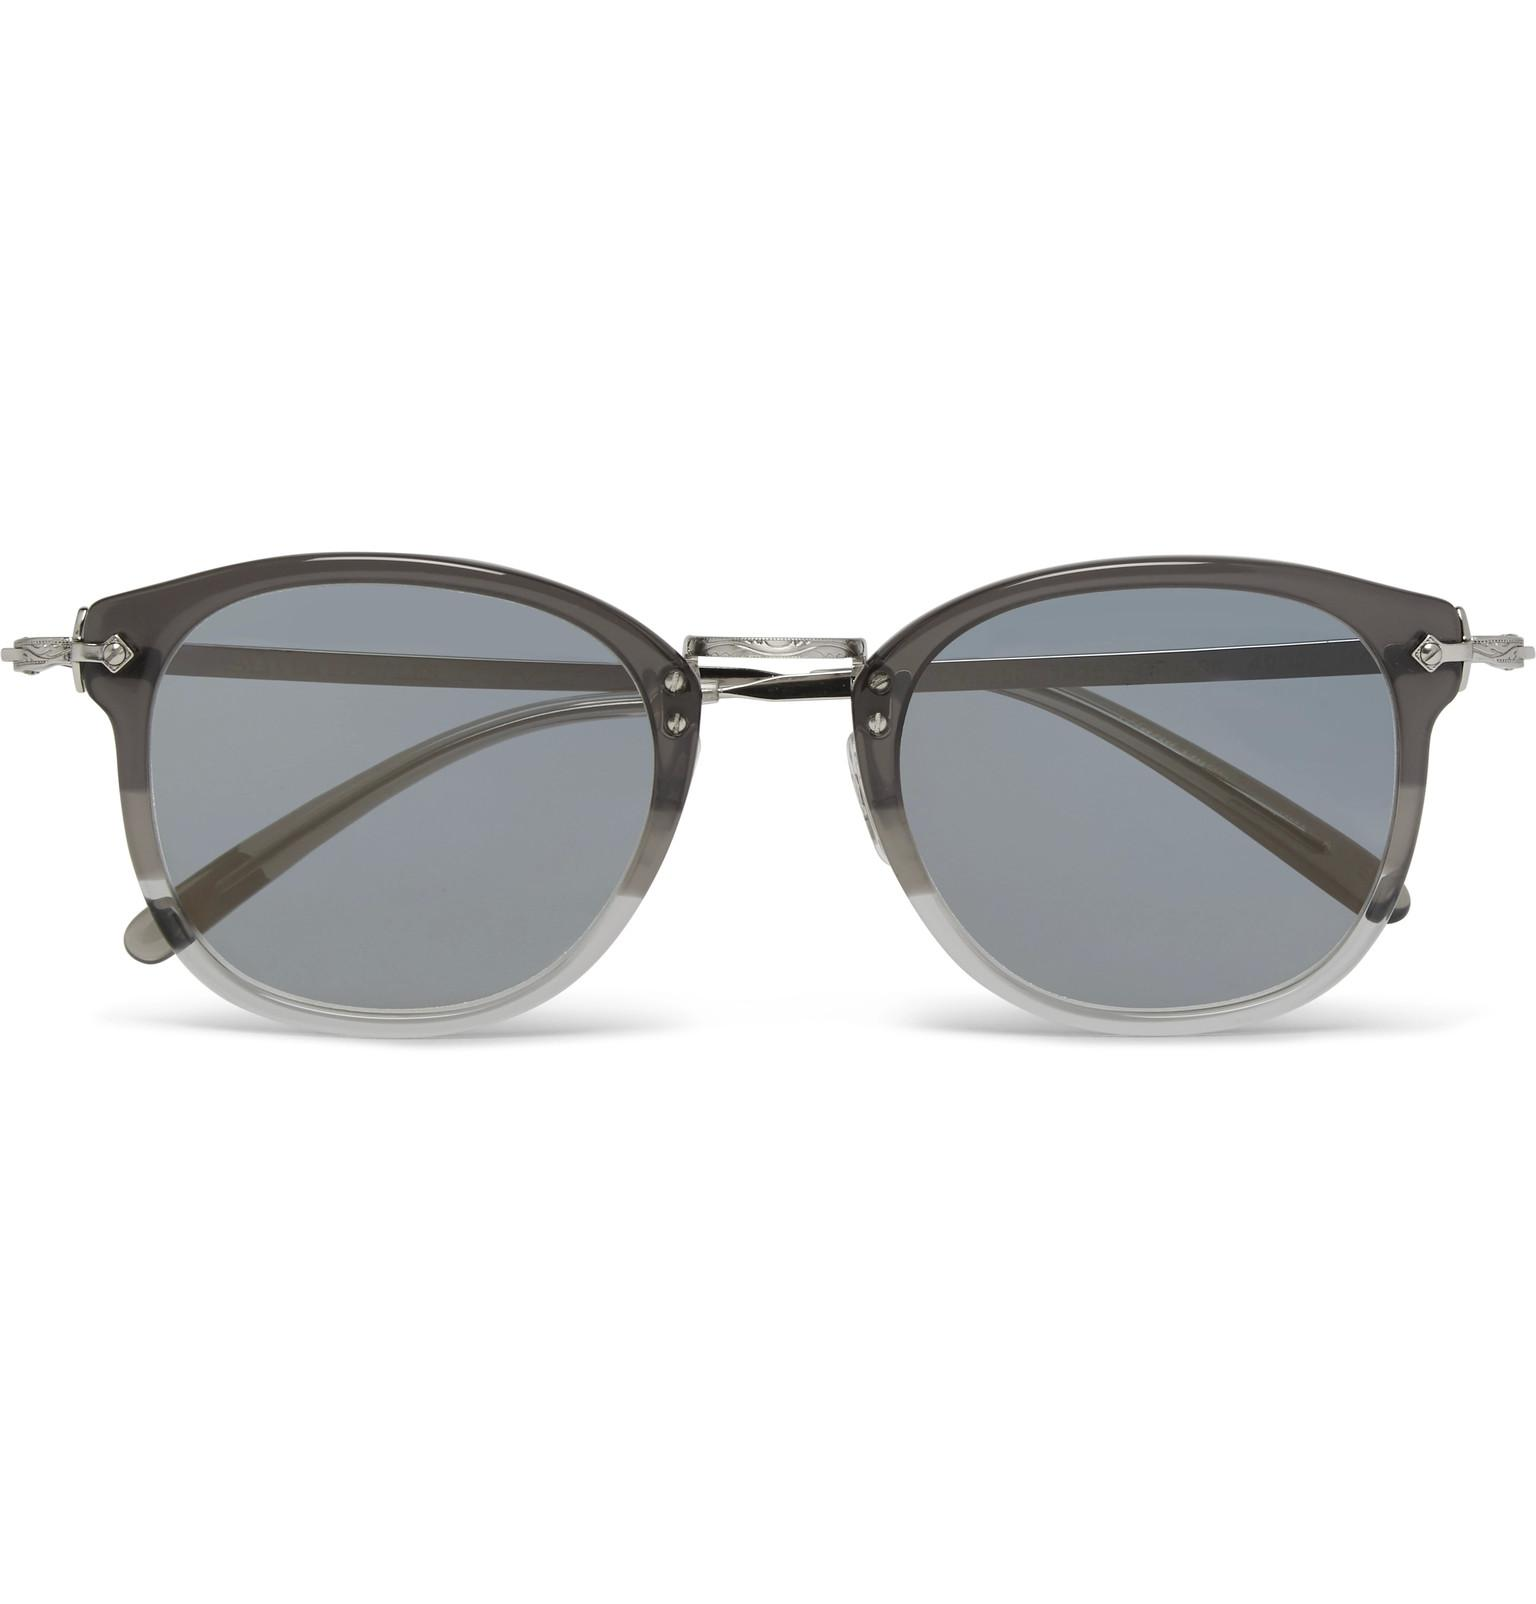 dc223269f6 Lyst - Oliver Peoples Round-frame Two-tone Acetate And Silver-tone ...